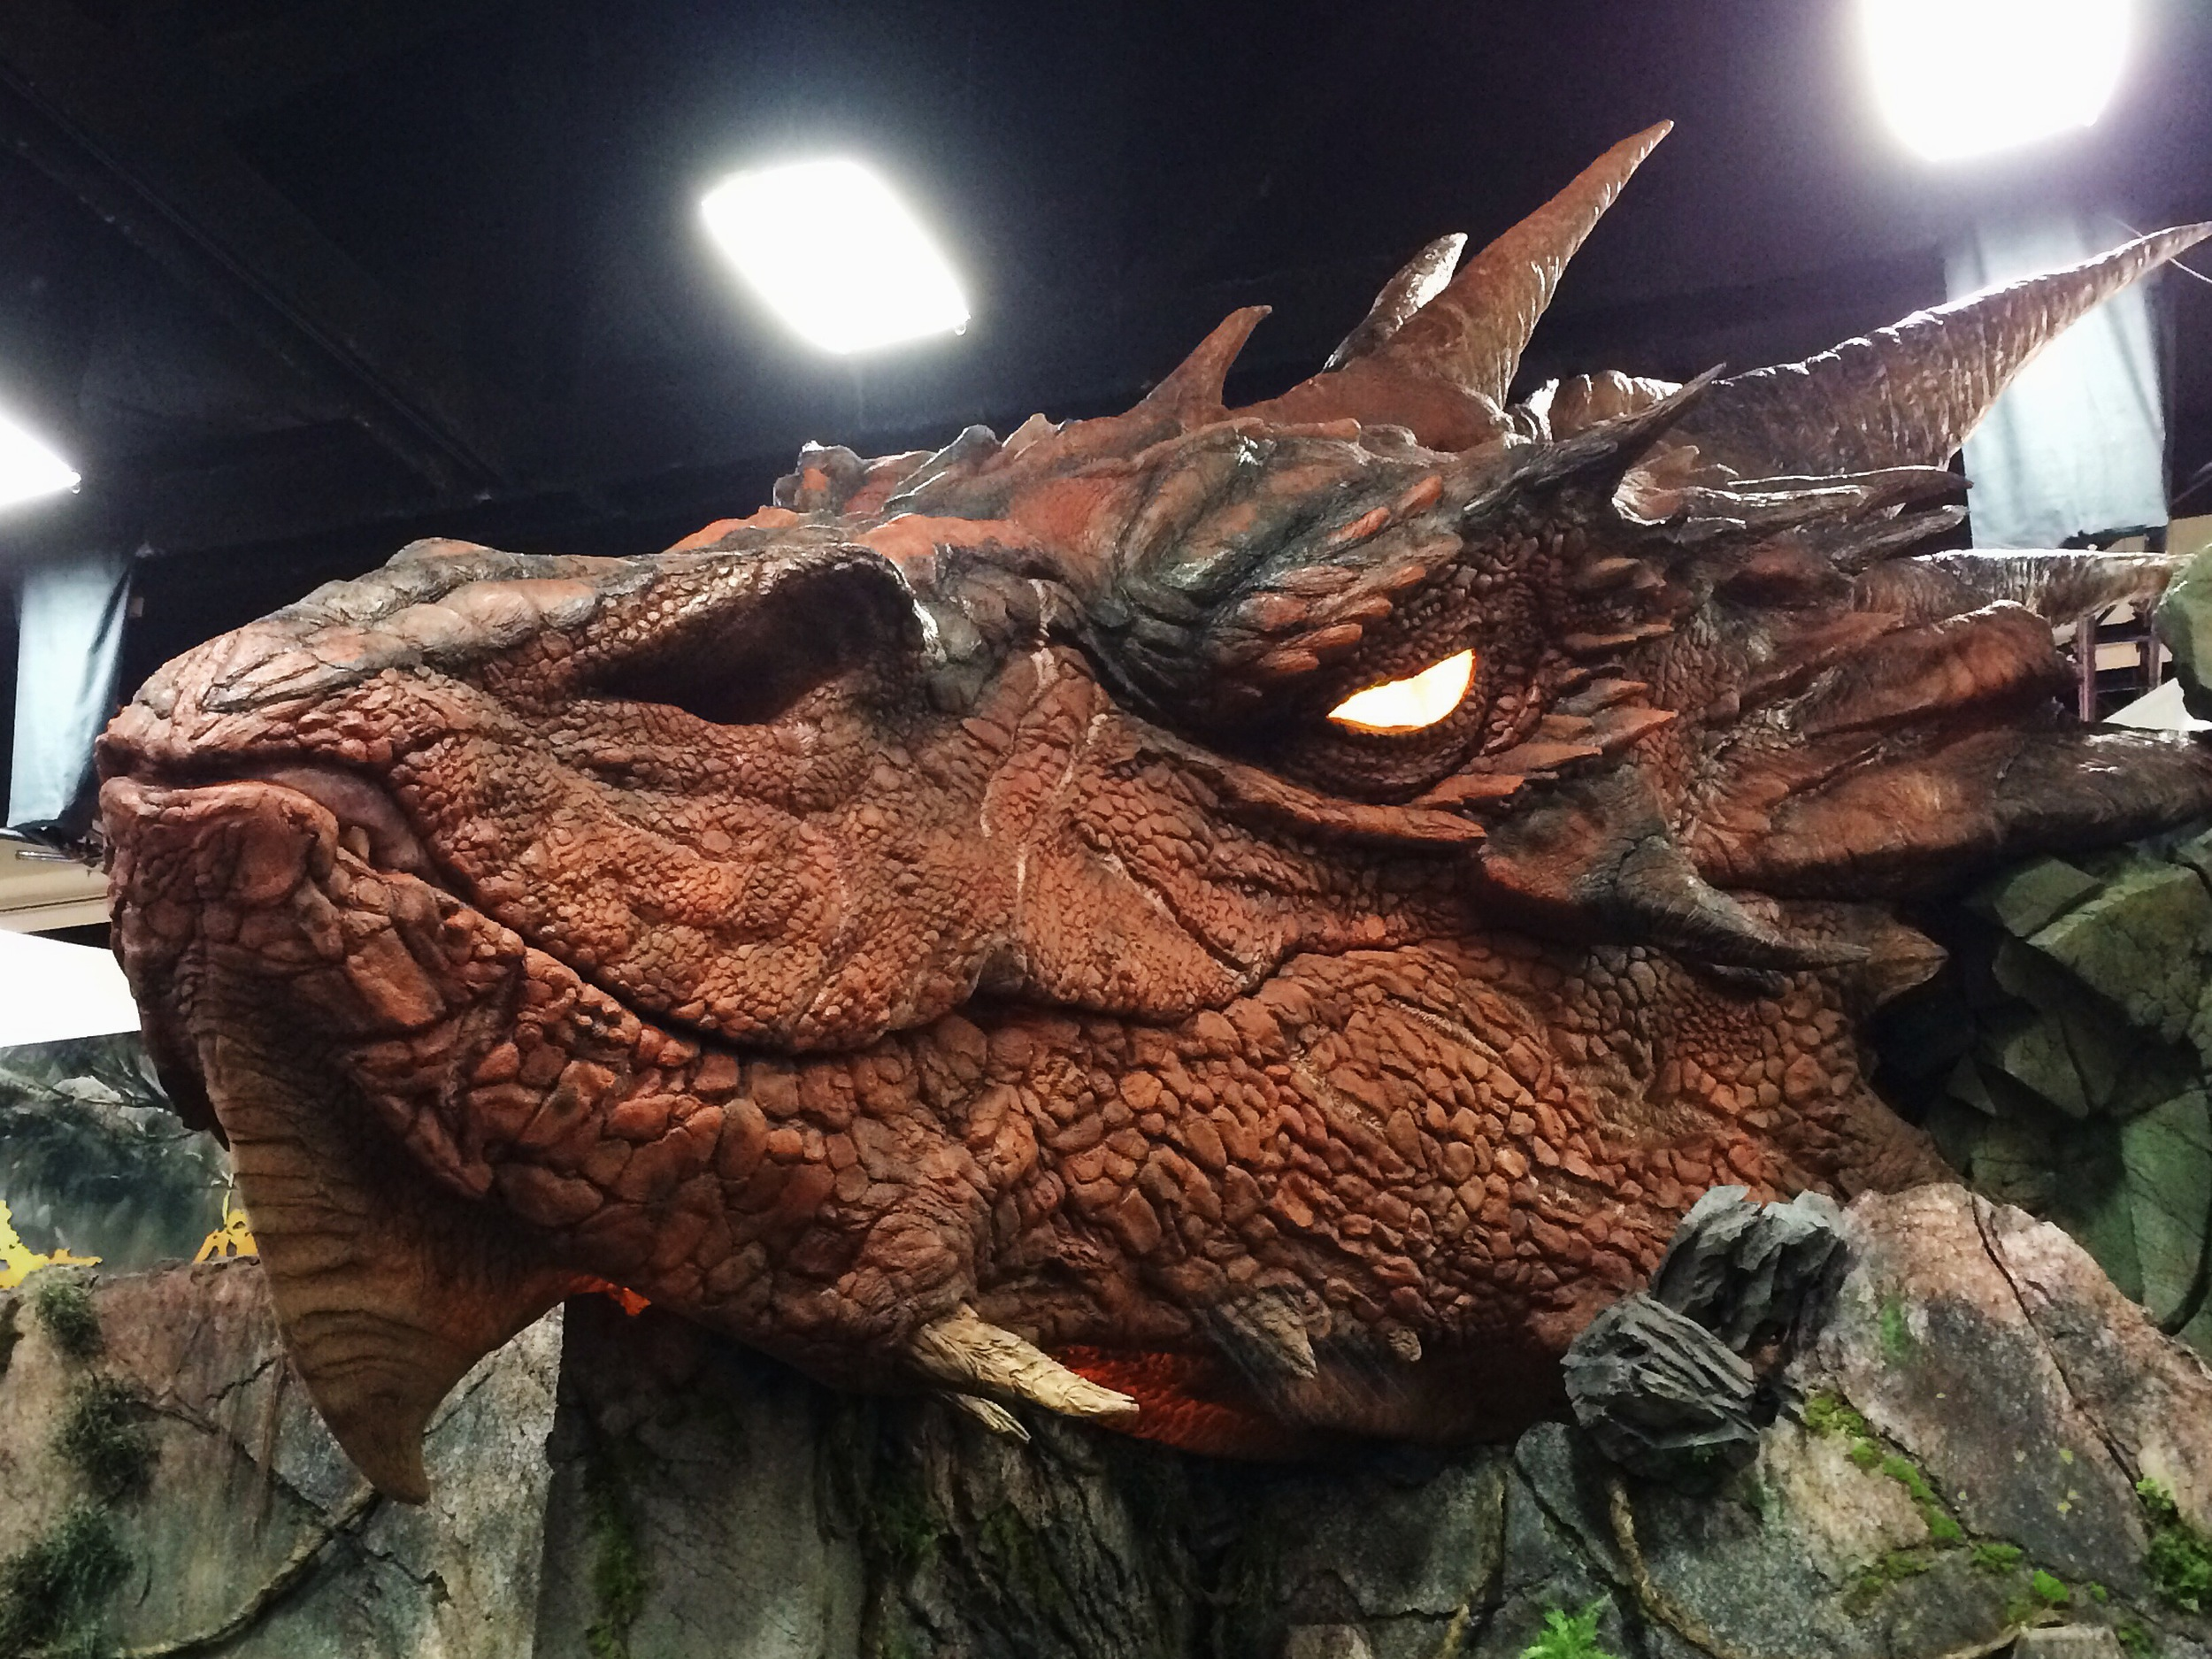 Weta Workshop had a killer booth with all kinds of LOTR and Hobbit stuff. The big homie Smaug was posted. *Spoiler Alert* Bilbo and the dwarves successfully take the mountain back from this buster at the end of the Hobbit.